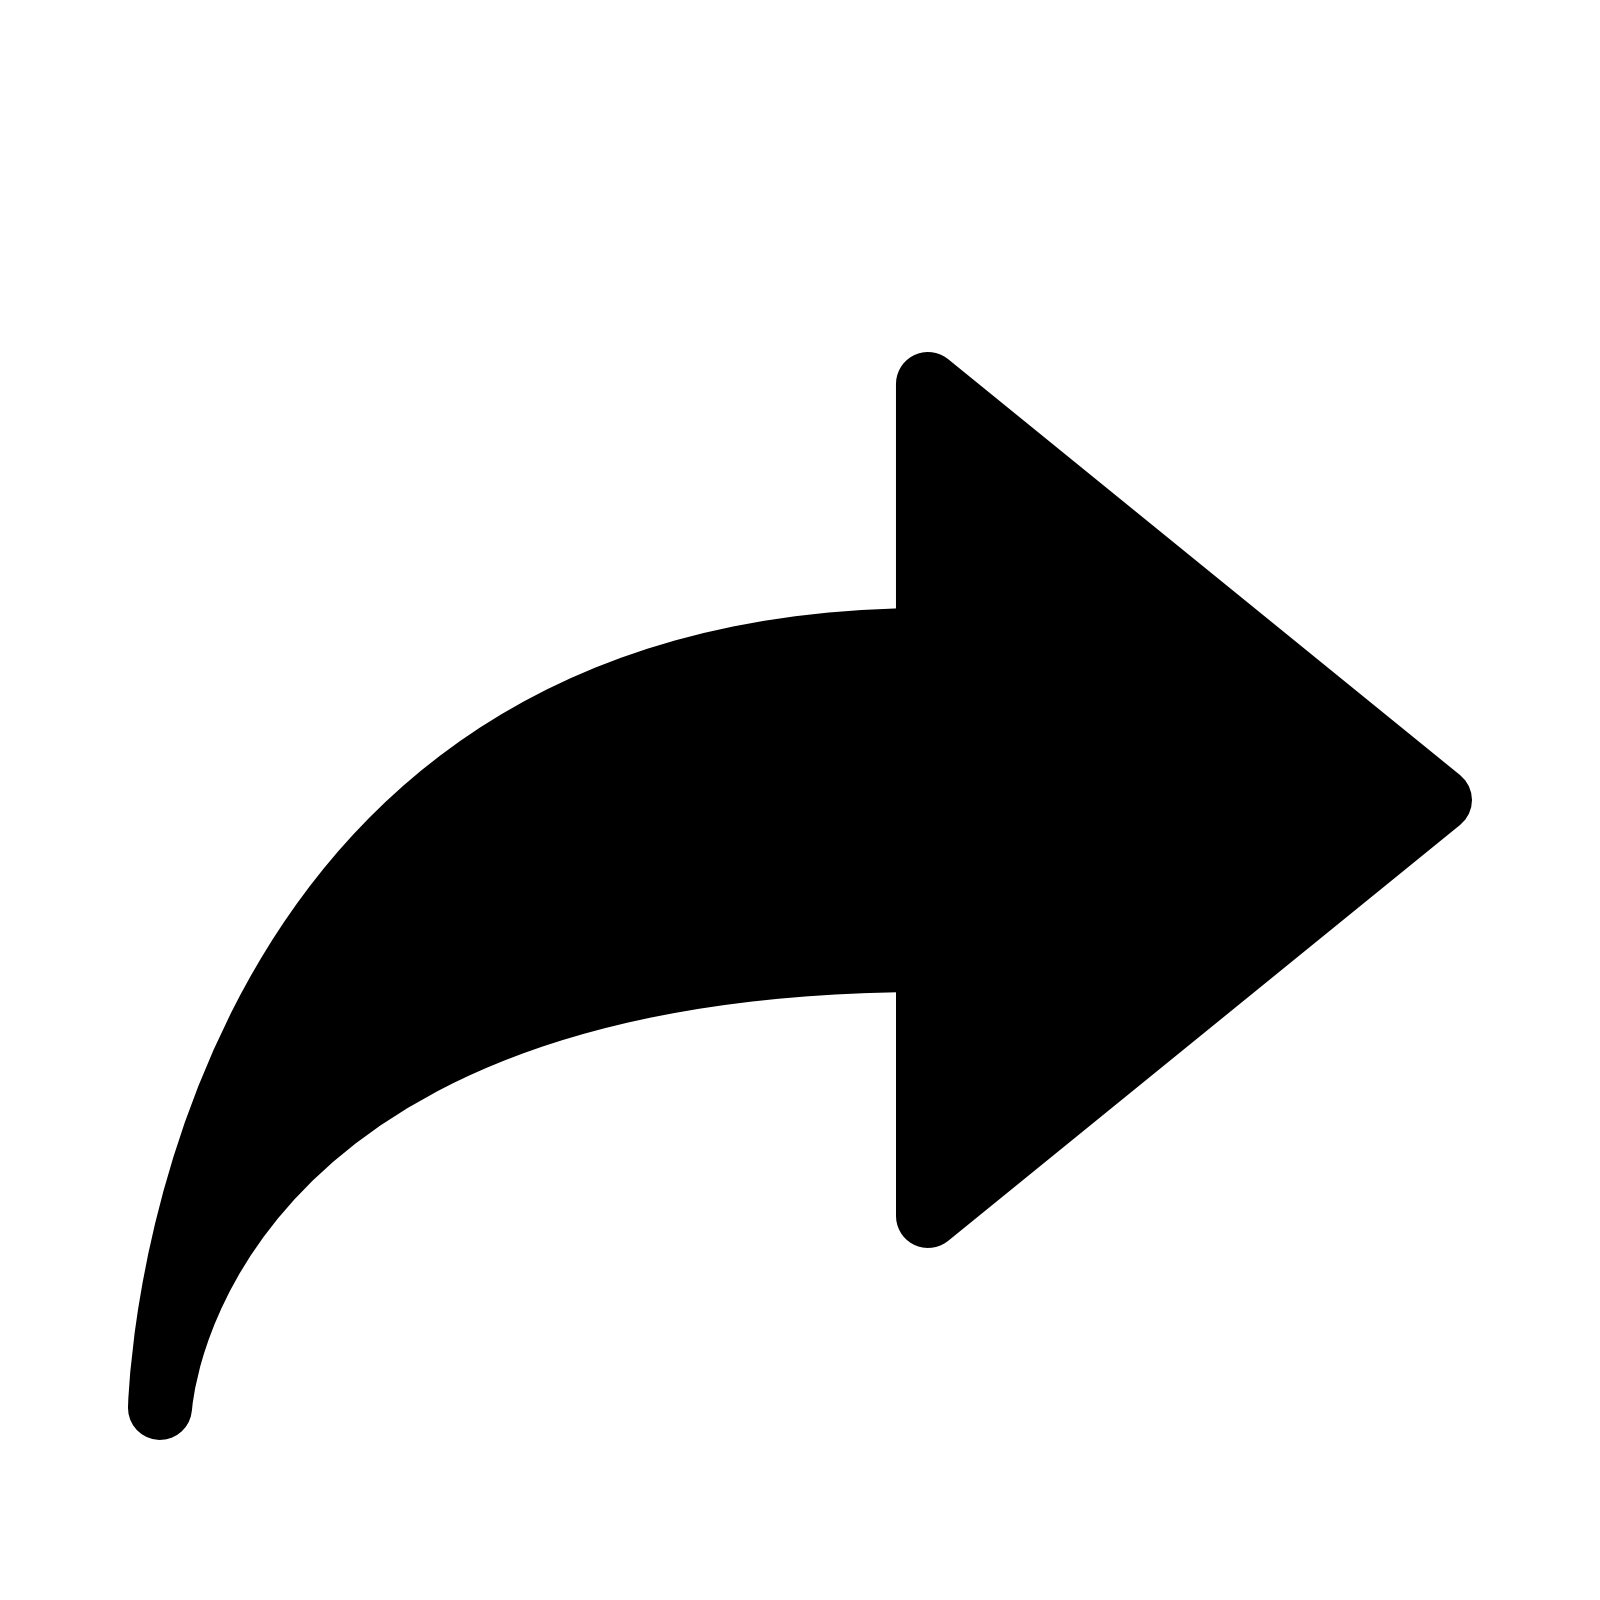 Forward Arrow Filled Icon - Arrow PNG